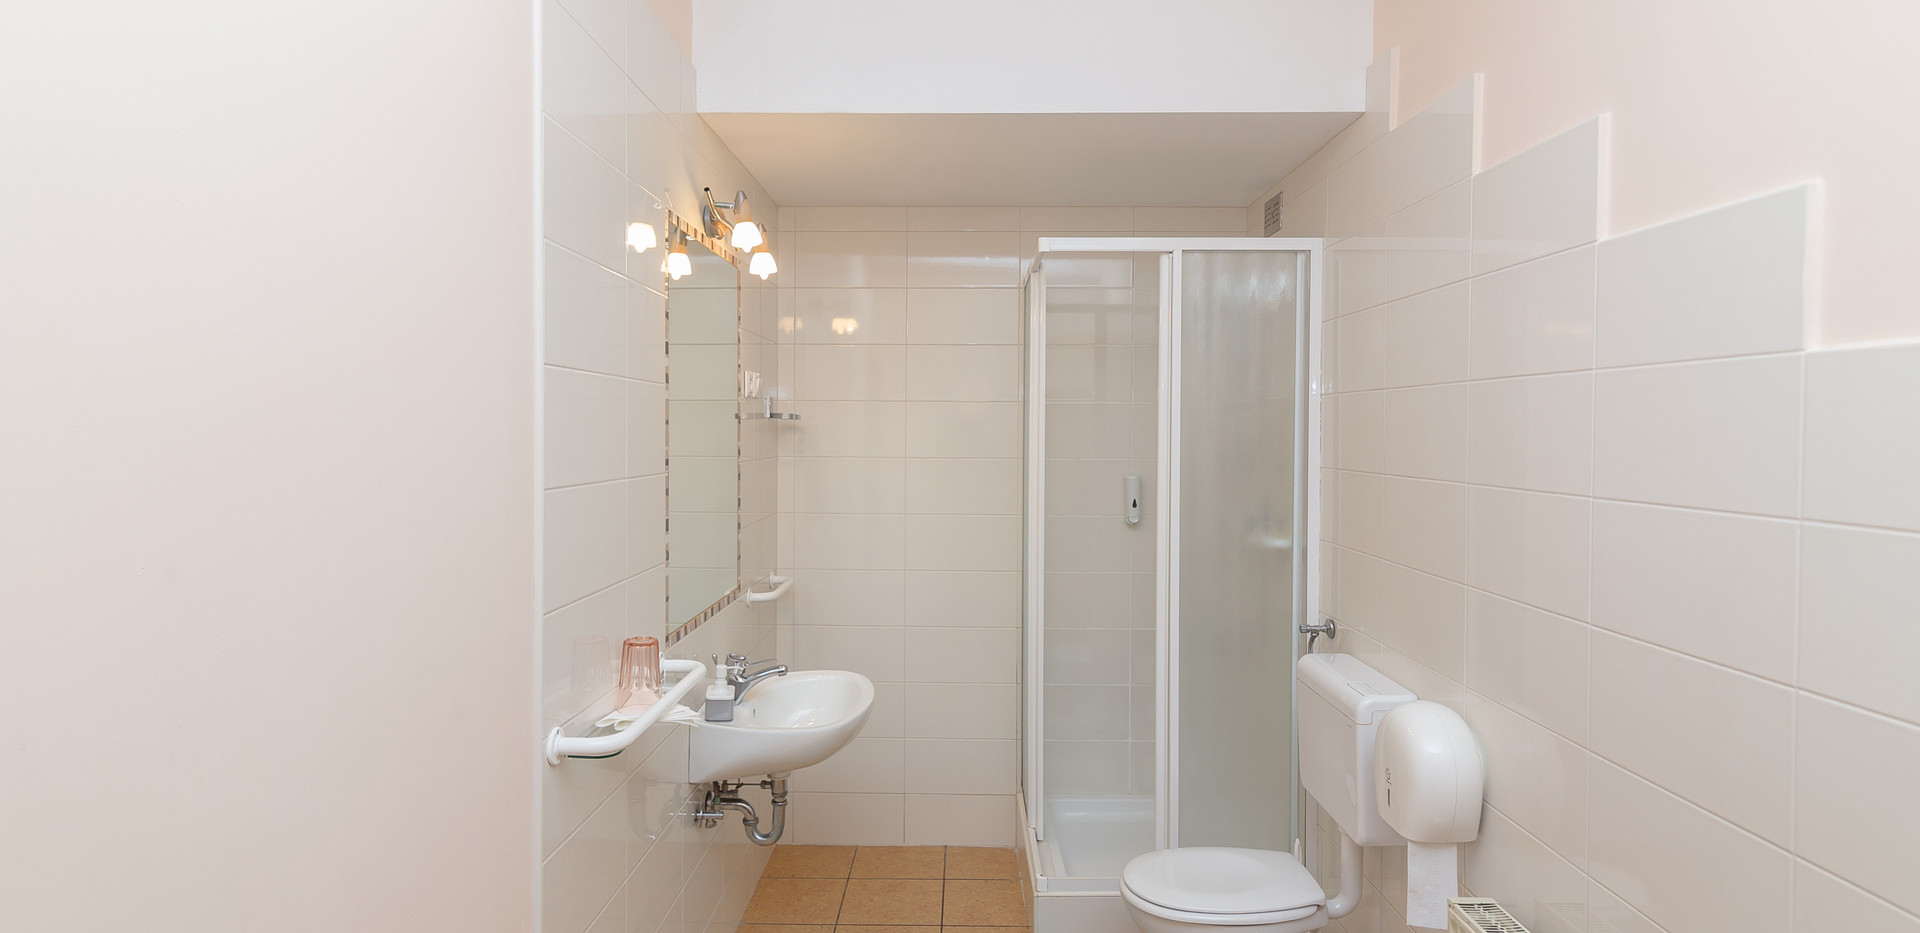 C-401-bathroom_1746.jpg